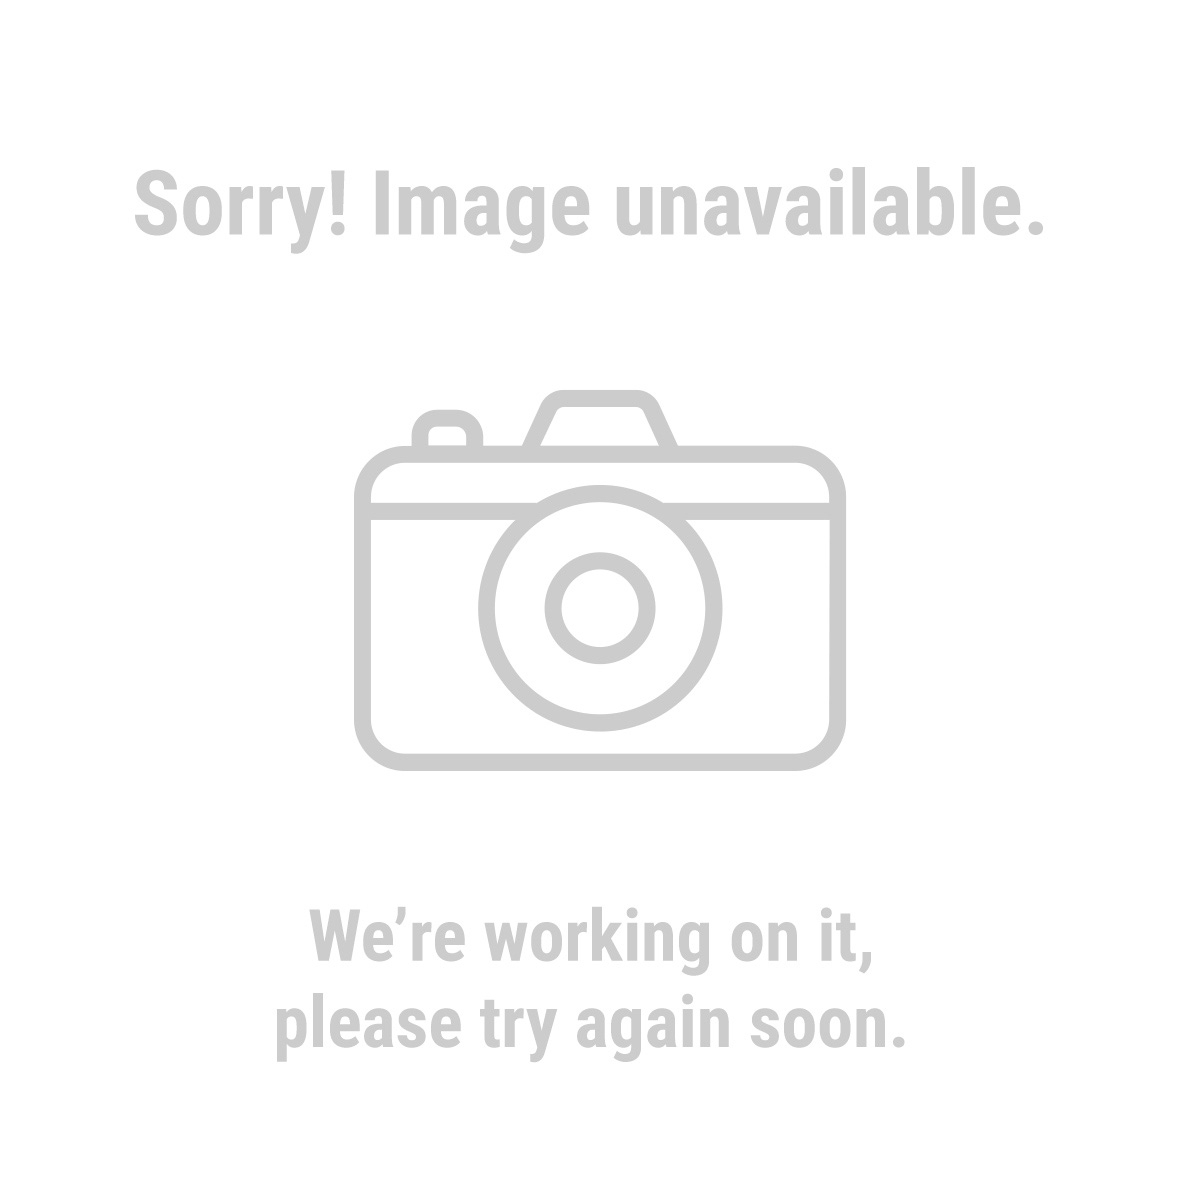 "Pittsburgh 67890 7 Piece 3/8"" Drive Metric Long Reach Hex Bit Socket Set"